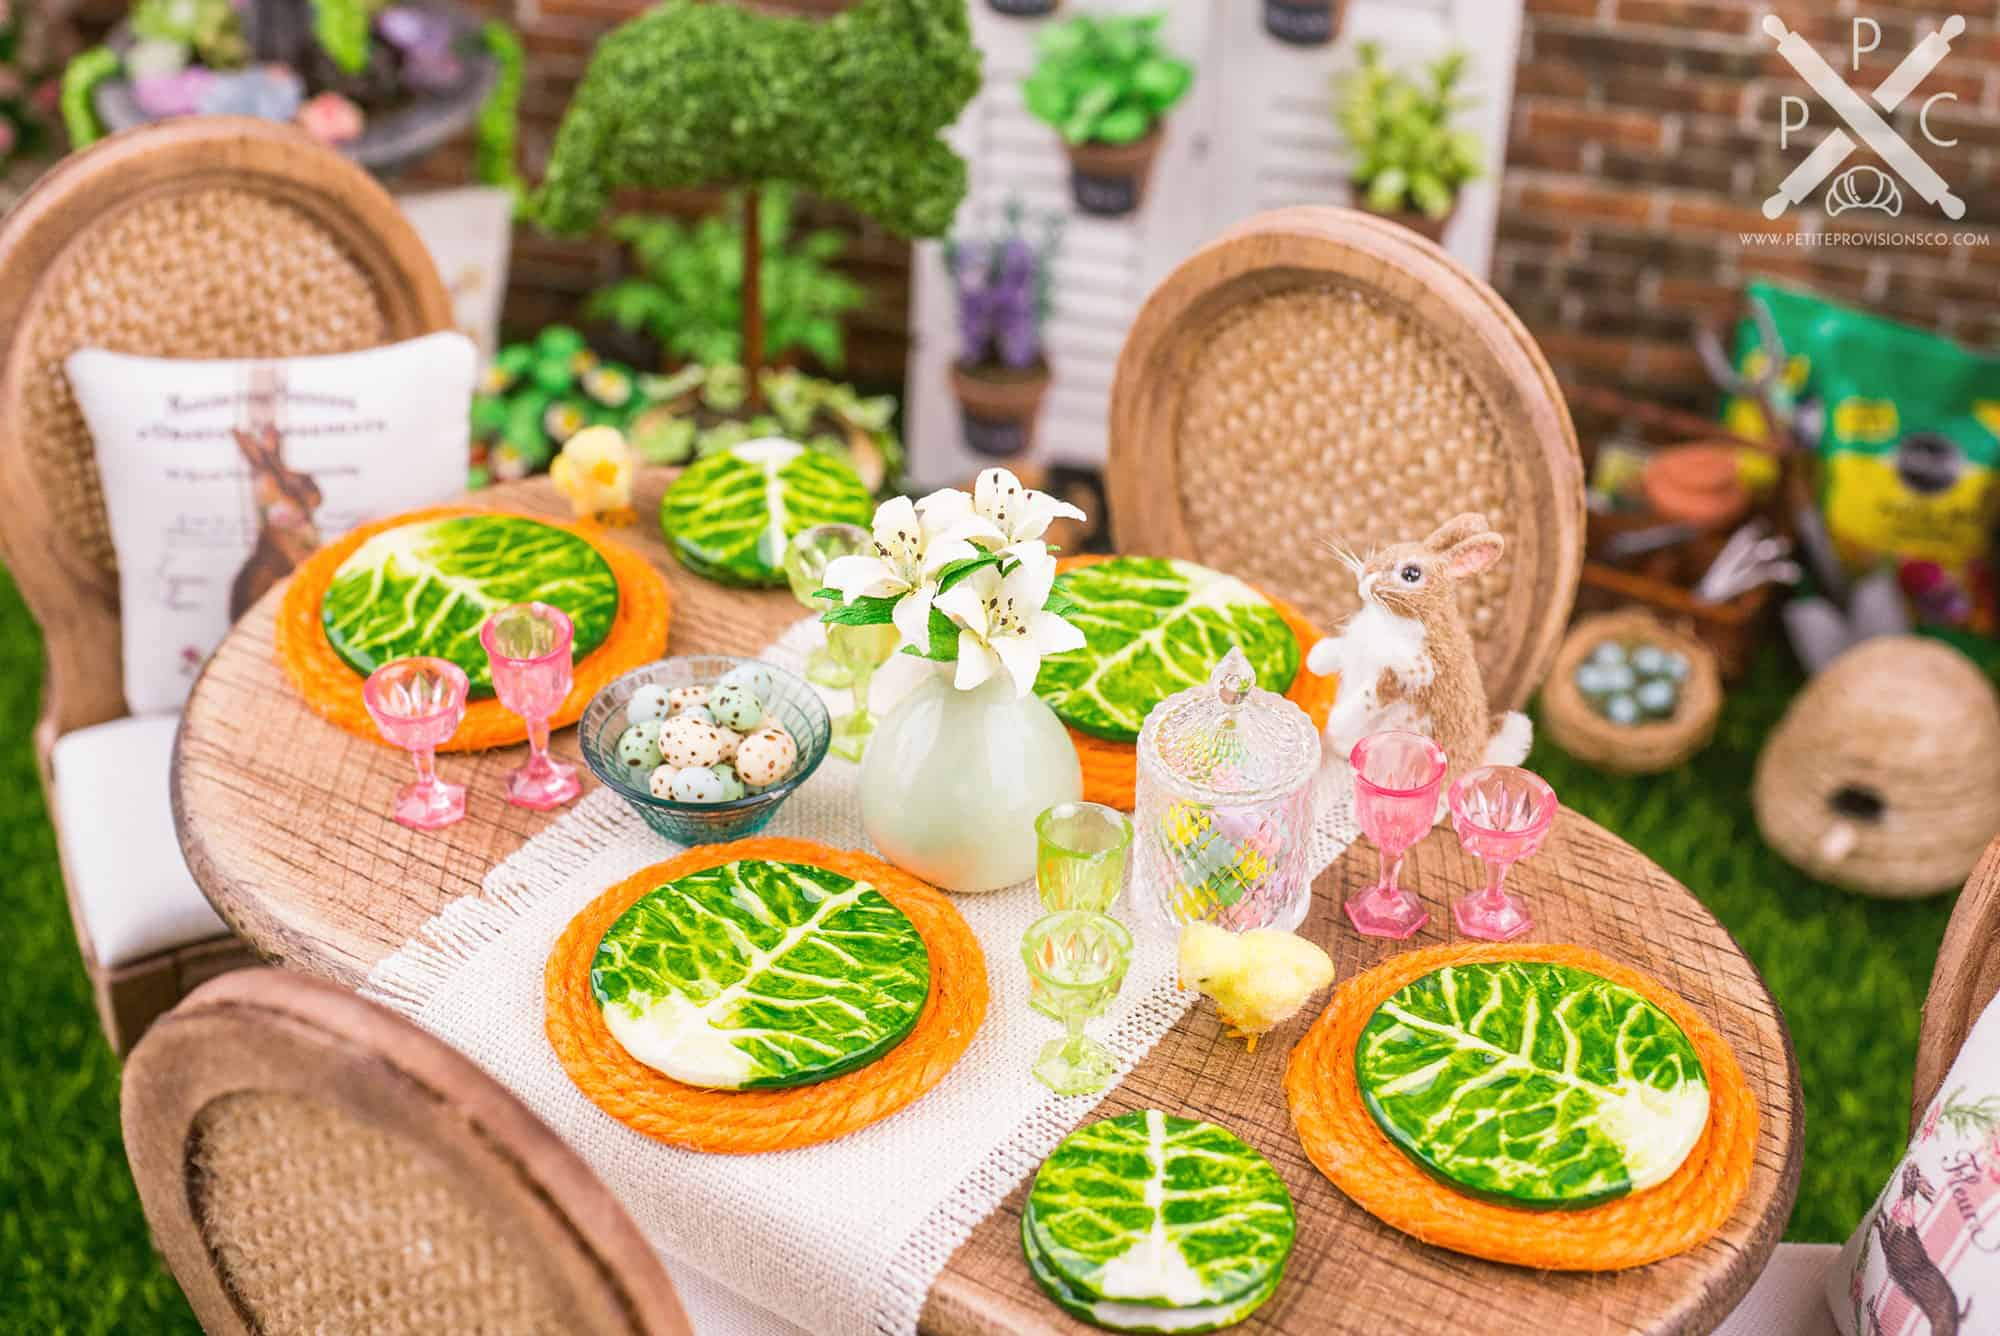 A dollhouse miniature spring, Easter table setting with cabbageware, pink and green glassware and white lilies by The Petite Provisions Co.